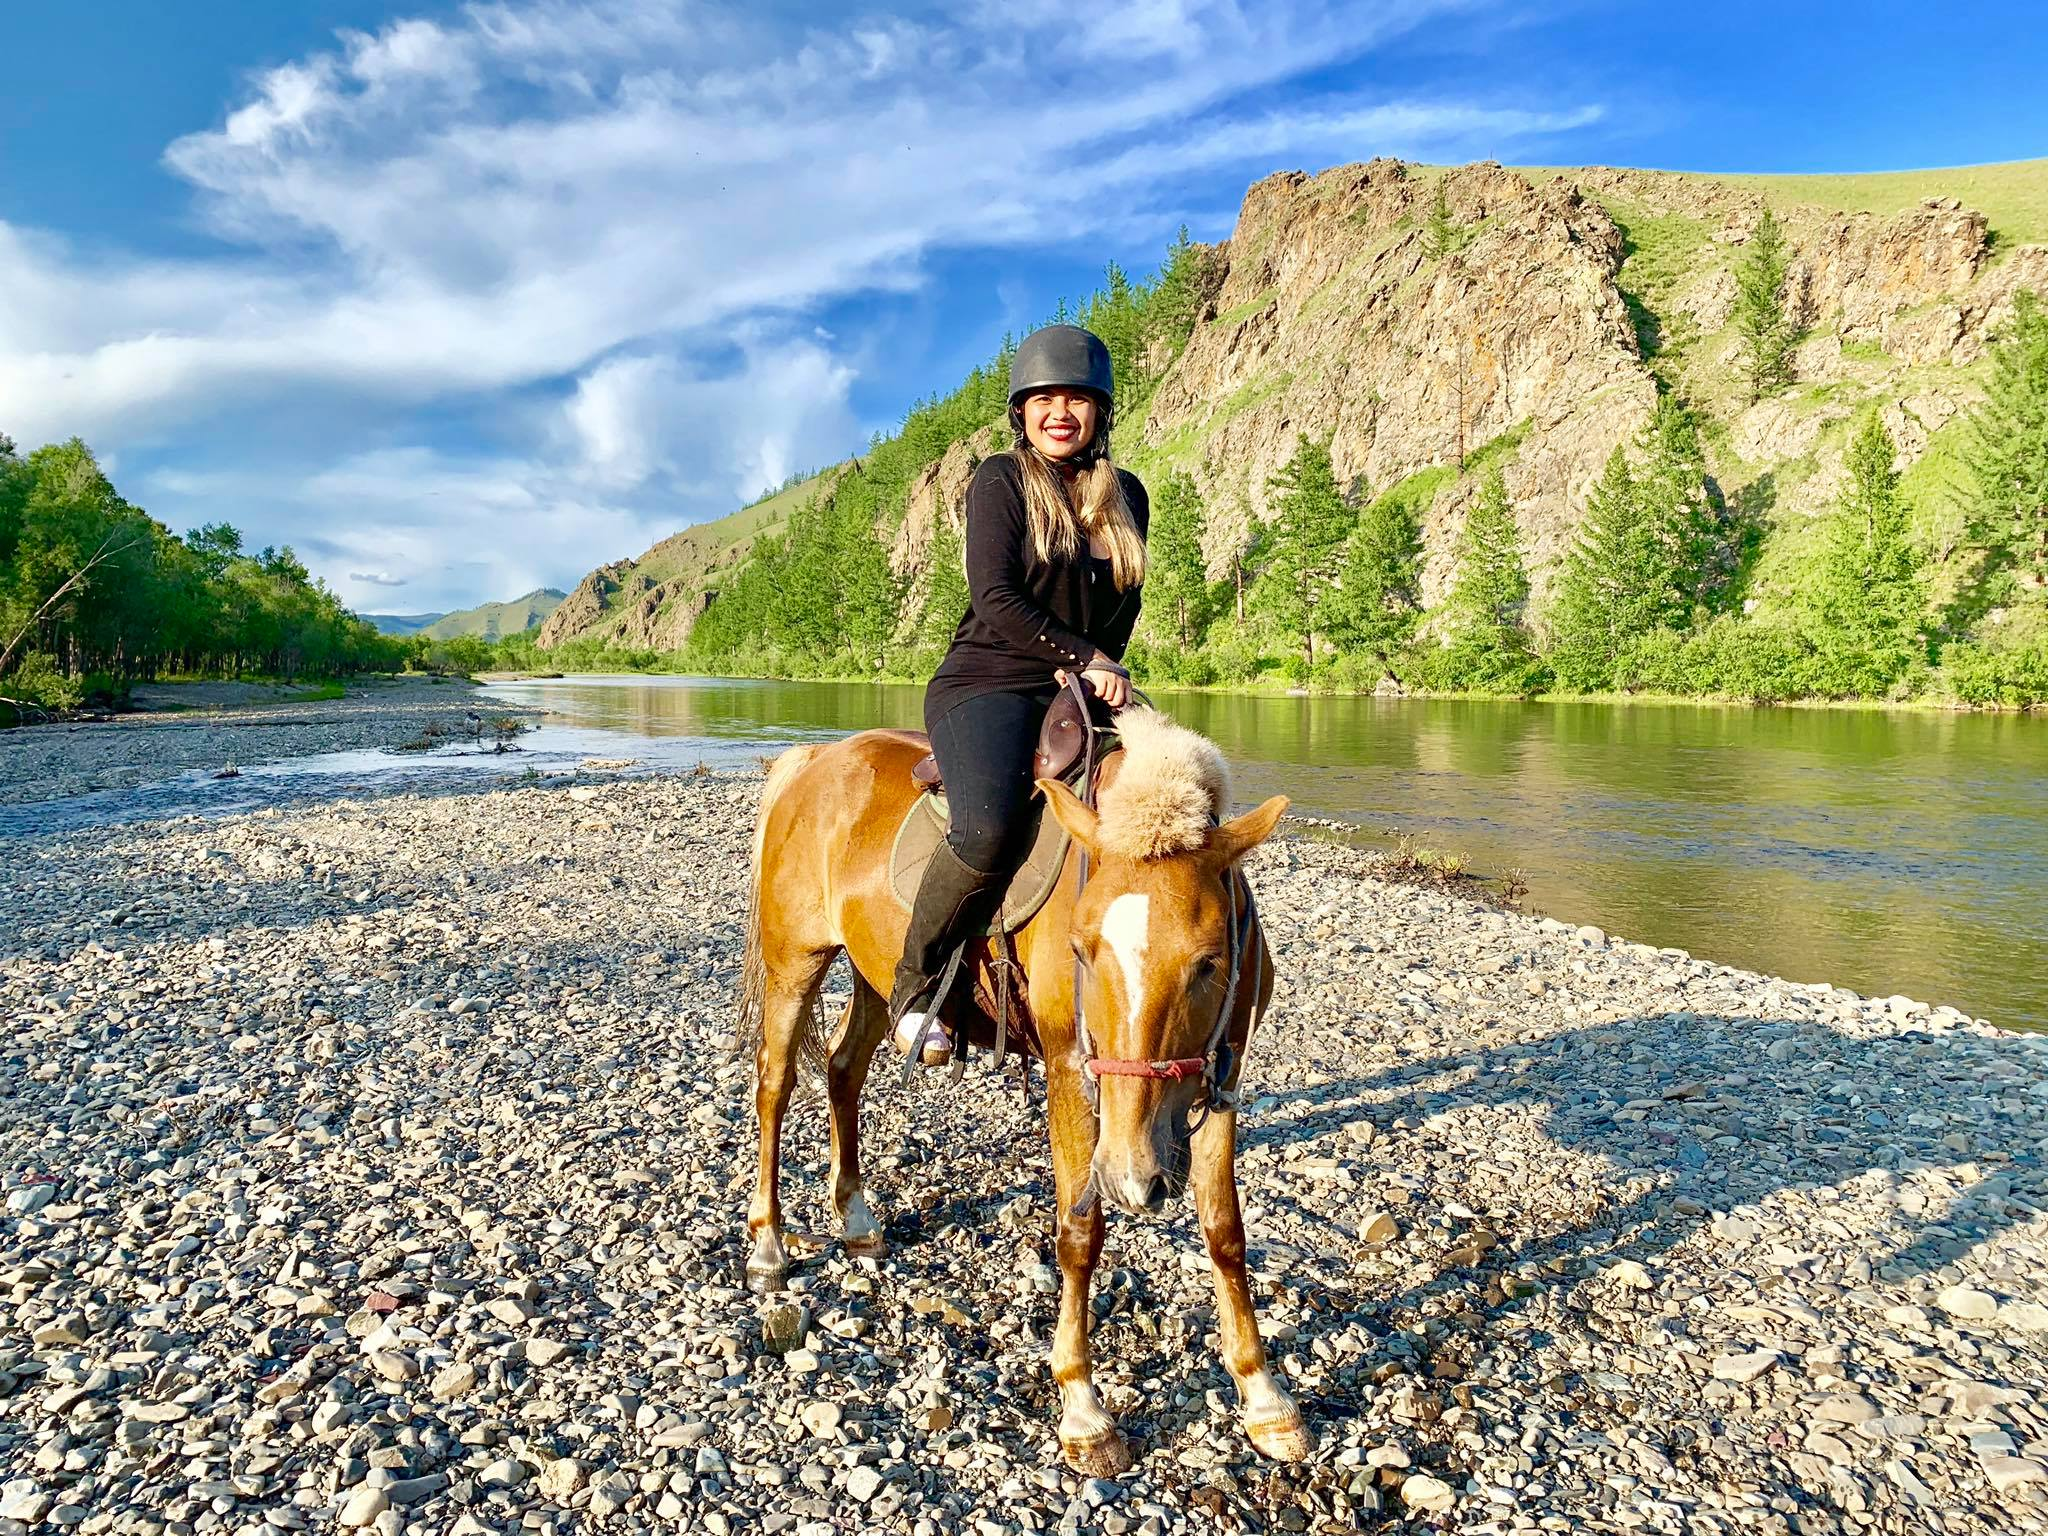 Kach Solo Travels in 2019 Hello from MONGOLIA - my 130th country.jpg